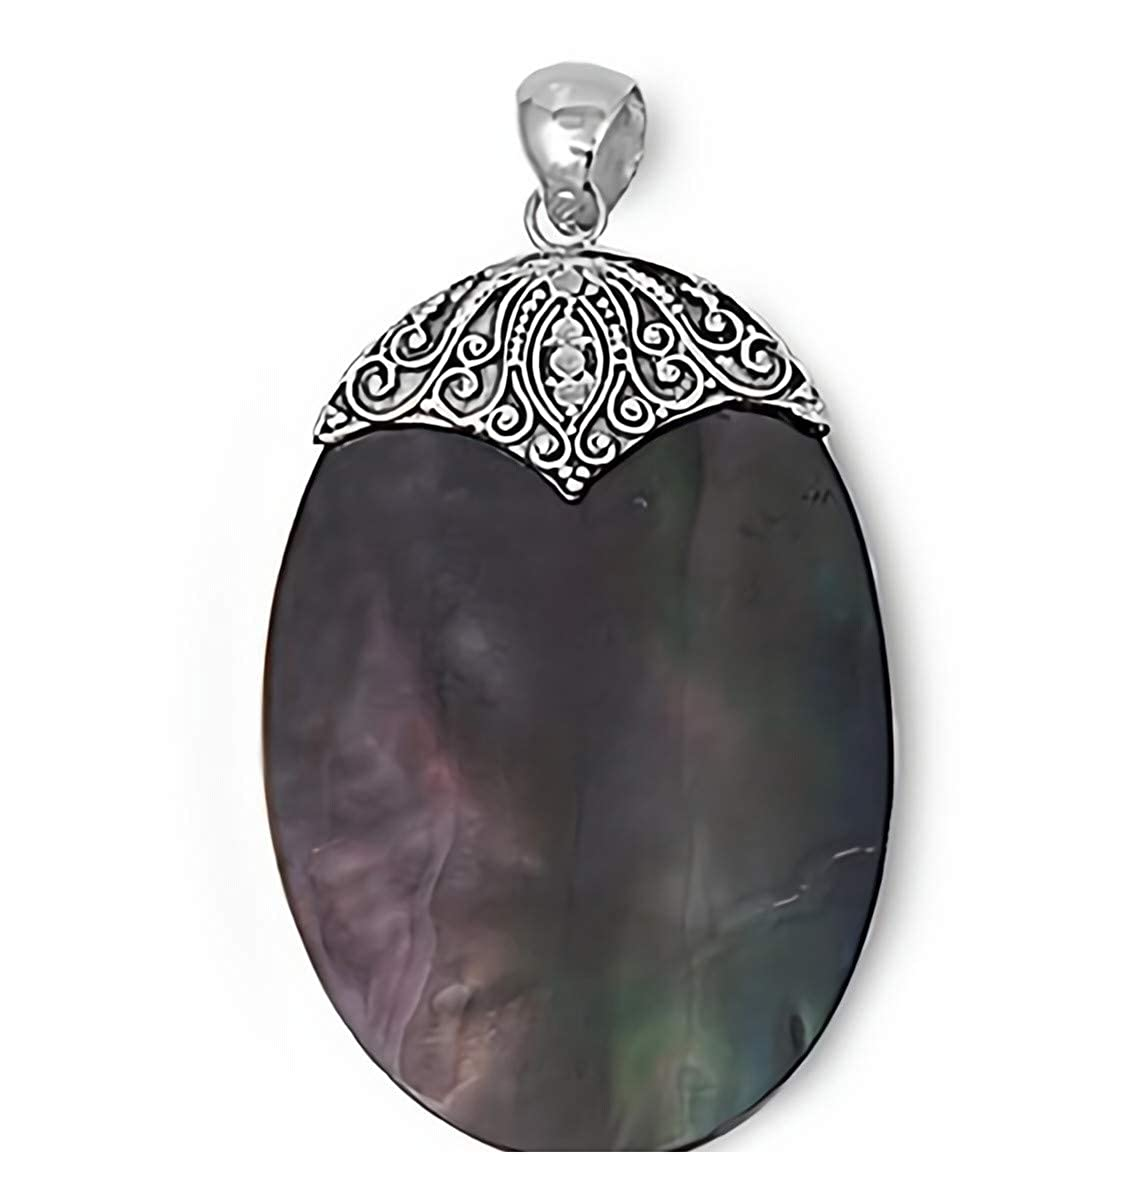 Glitzs Jewels 925 Sterling Silver Pendant with Stone in Gift Box Simulated Abalone